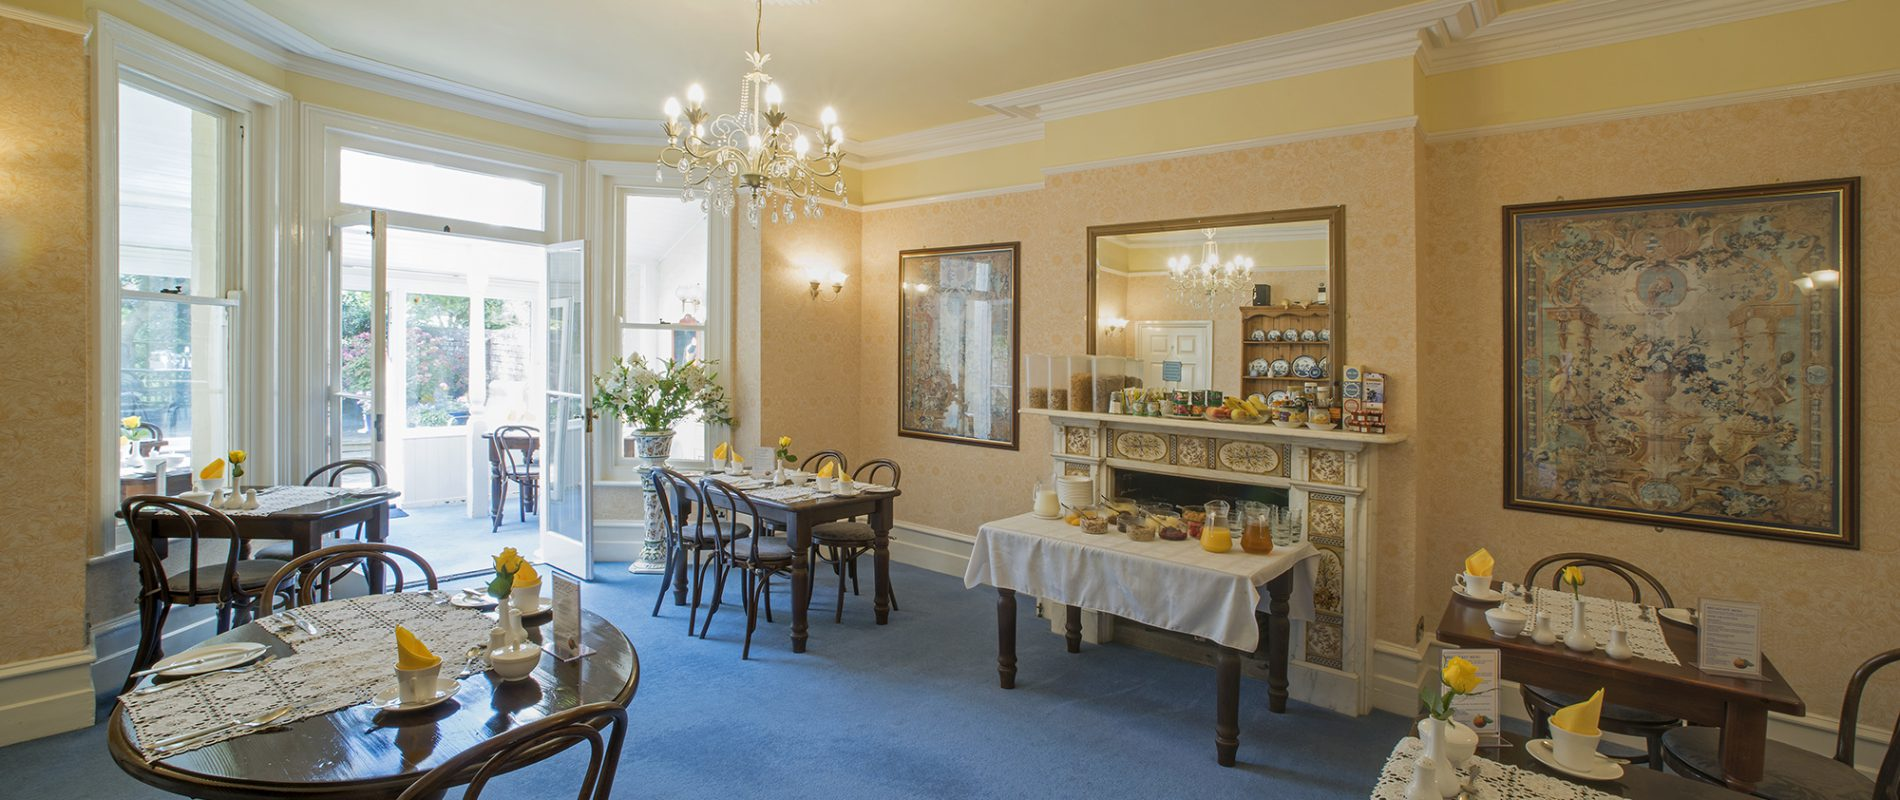 Bed And Breakfast Broadstairs Yorke Lodge Bed And Breakfast Canterbury Kent 01227 451243